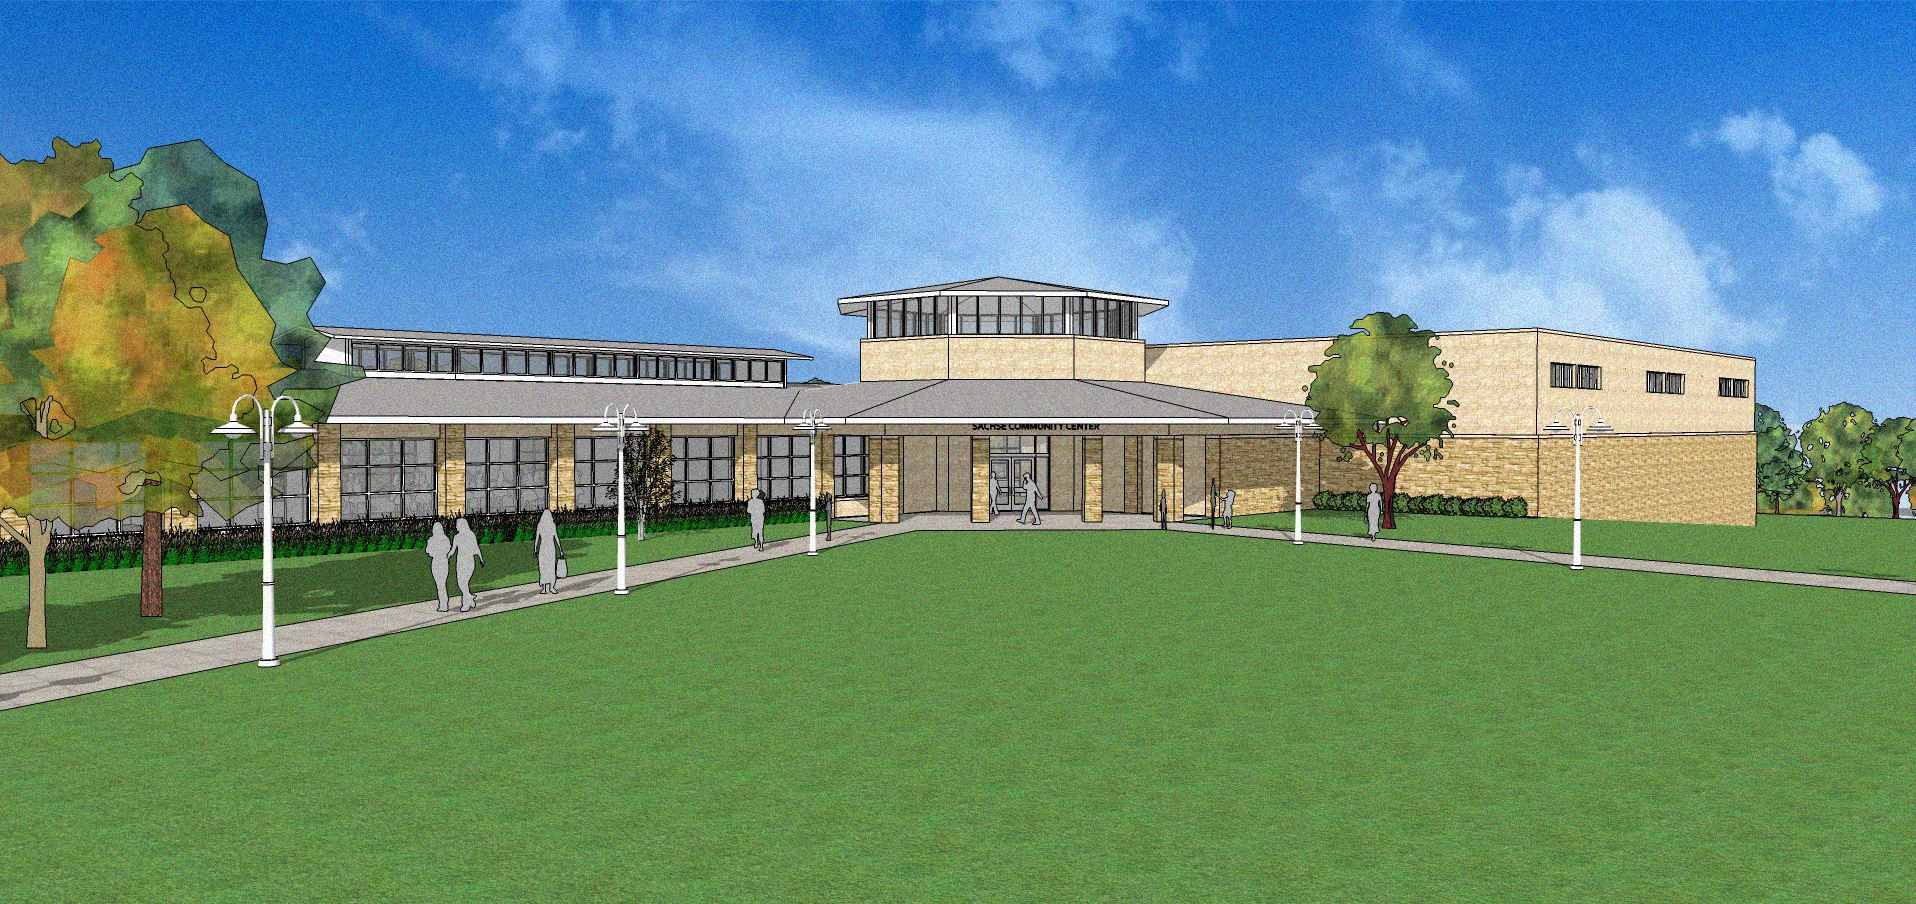 Community Center Rendering